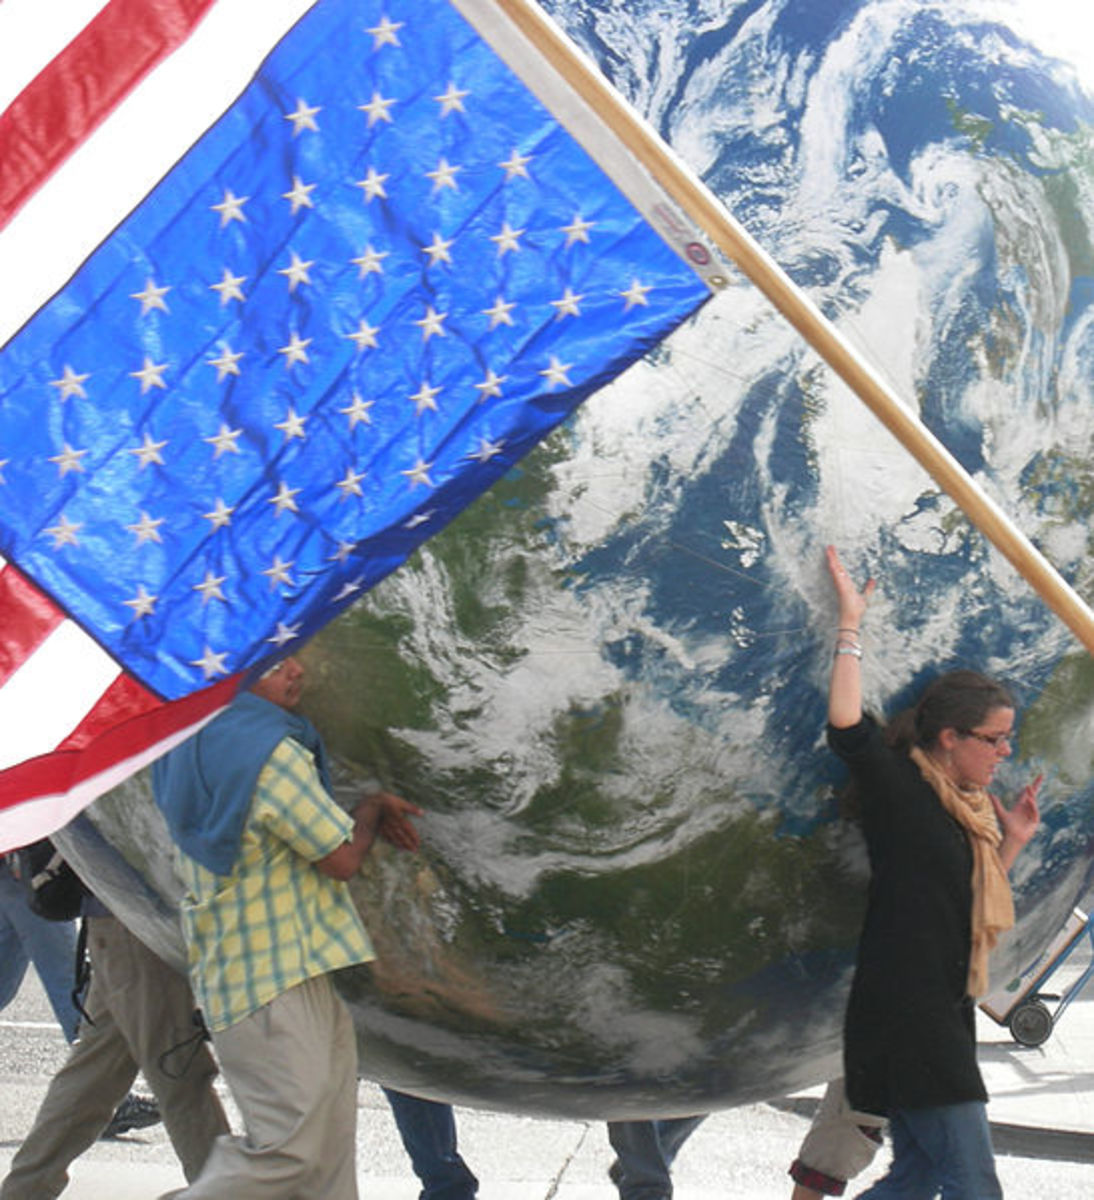 Giant globe and inverted U.S. flag (a signal of distress), anti-war march, Seattle, Washinigton, 27 October 2007.